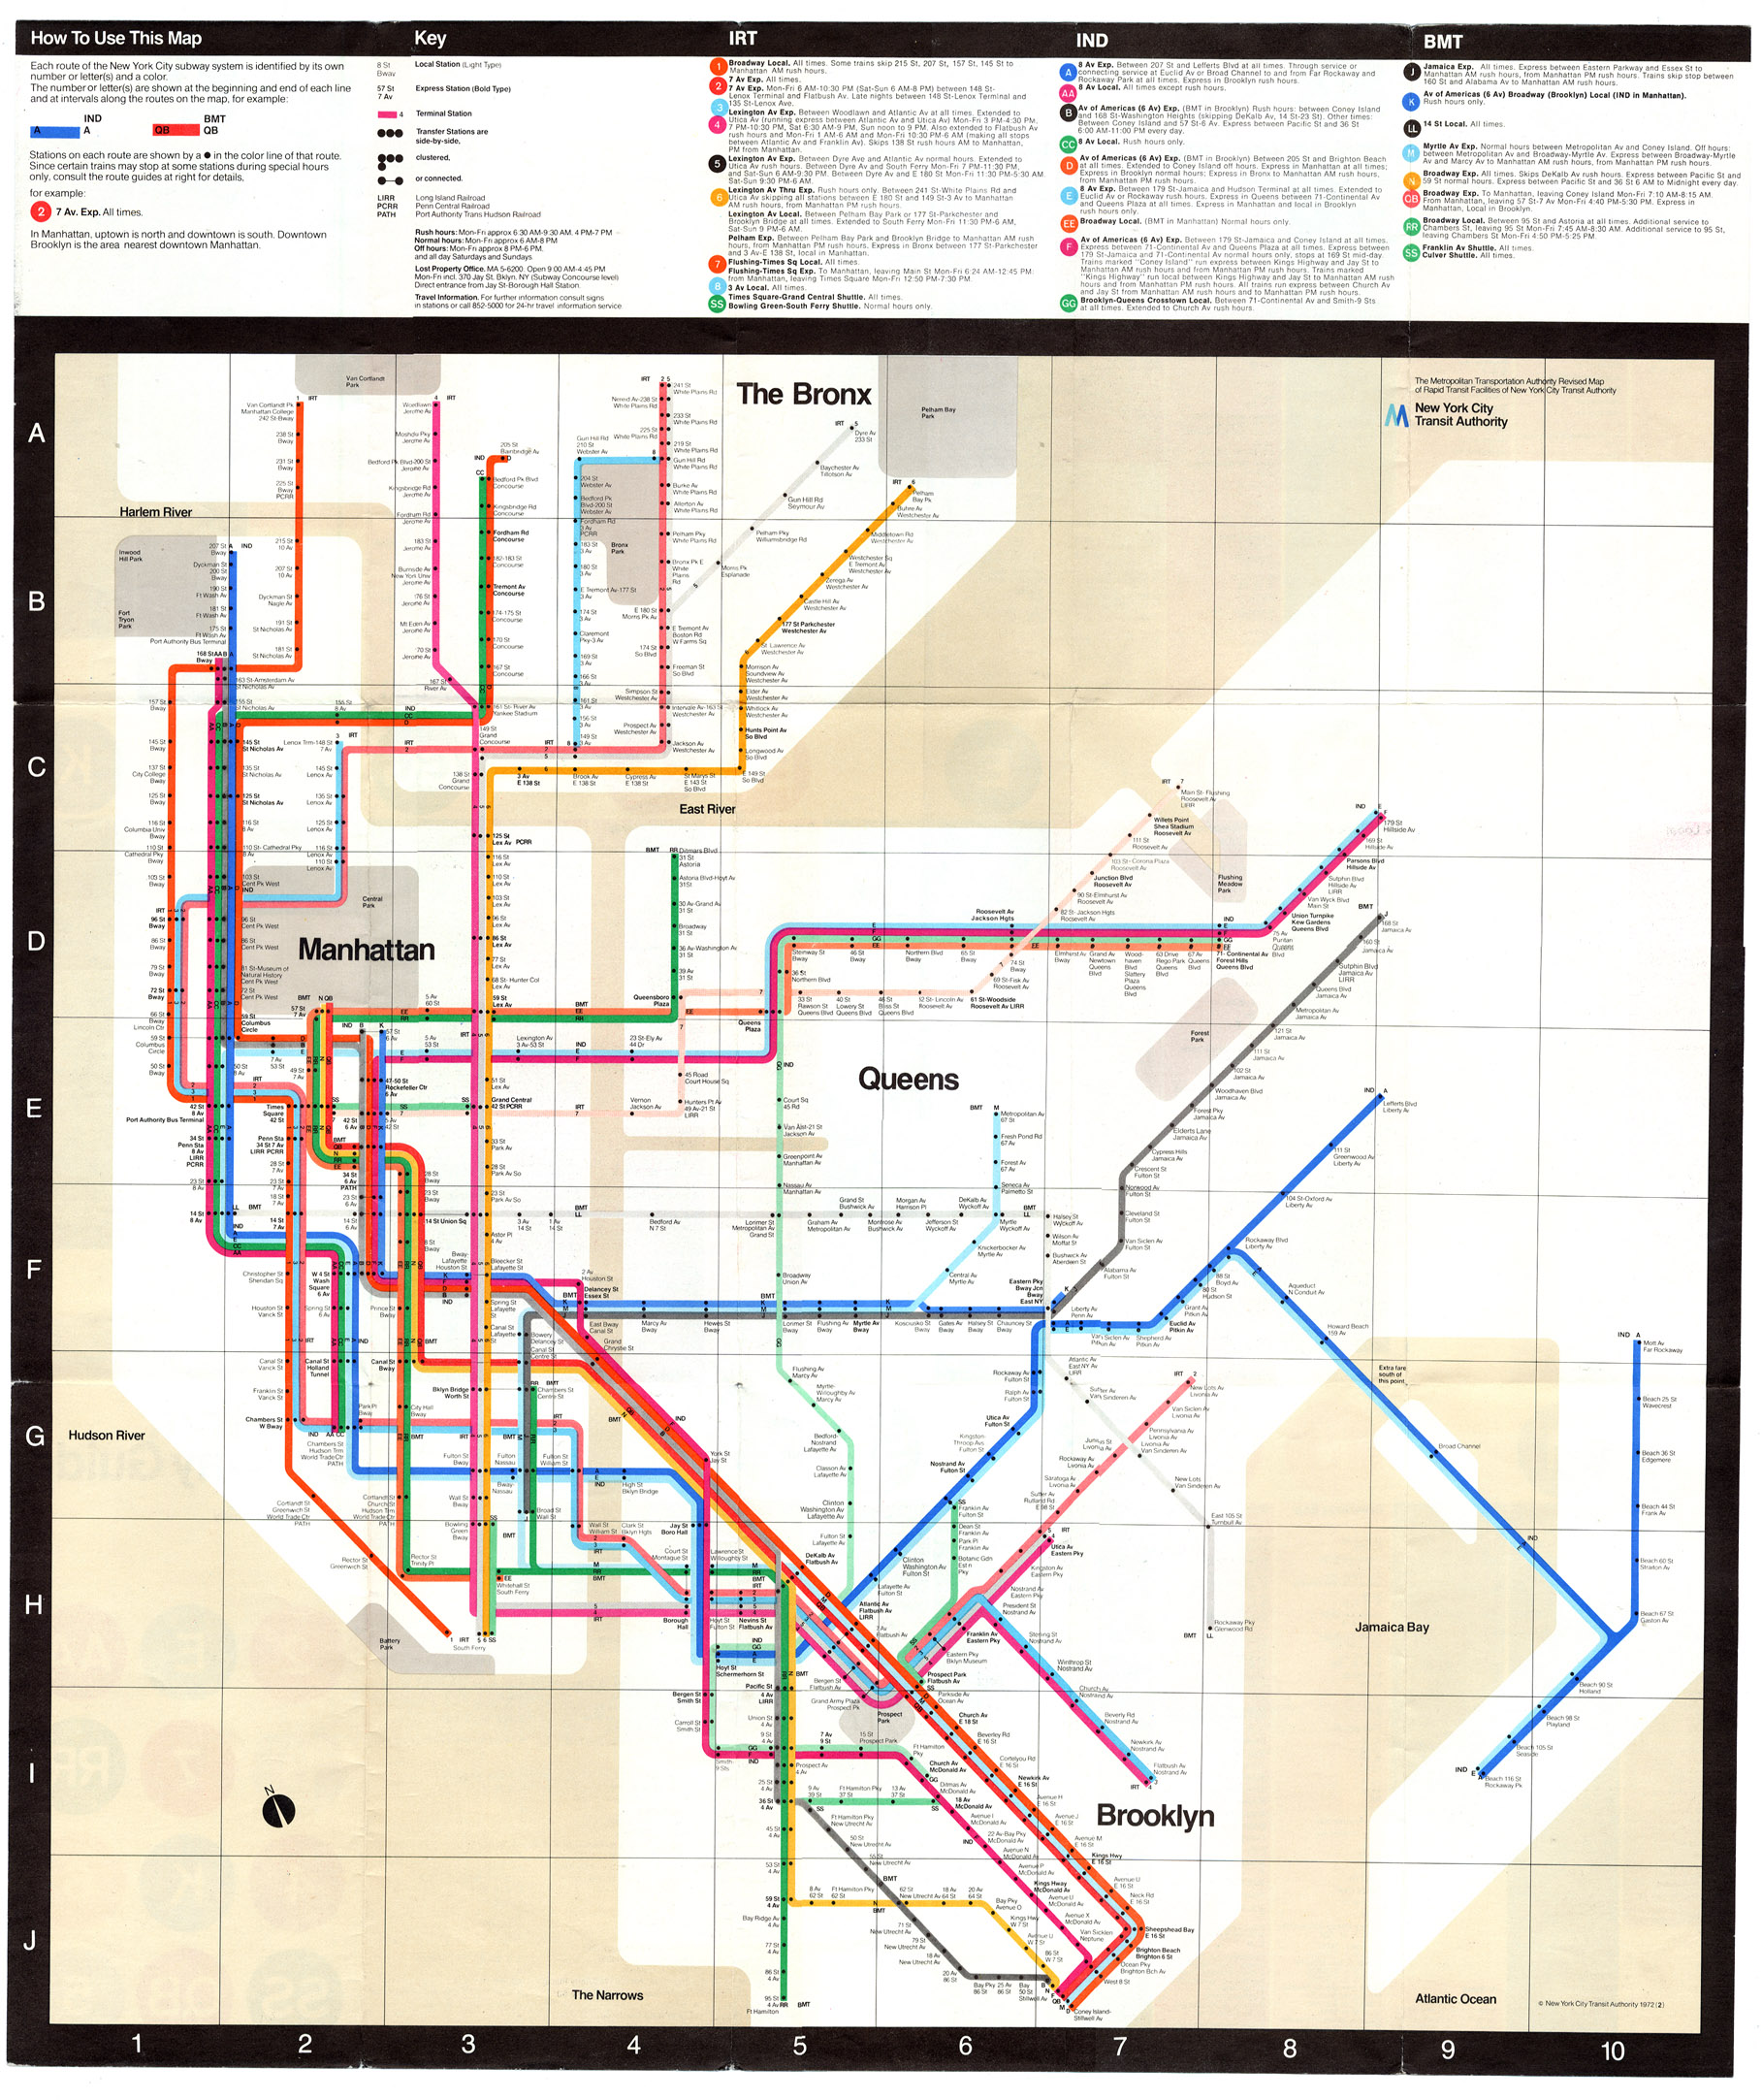 Download New York Subway Map.Www Nycsubway Org